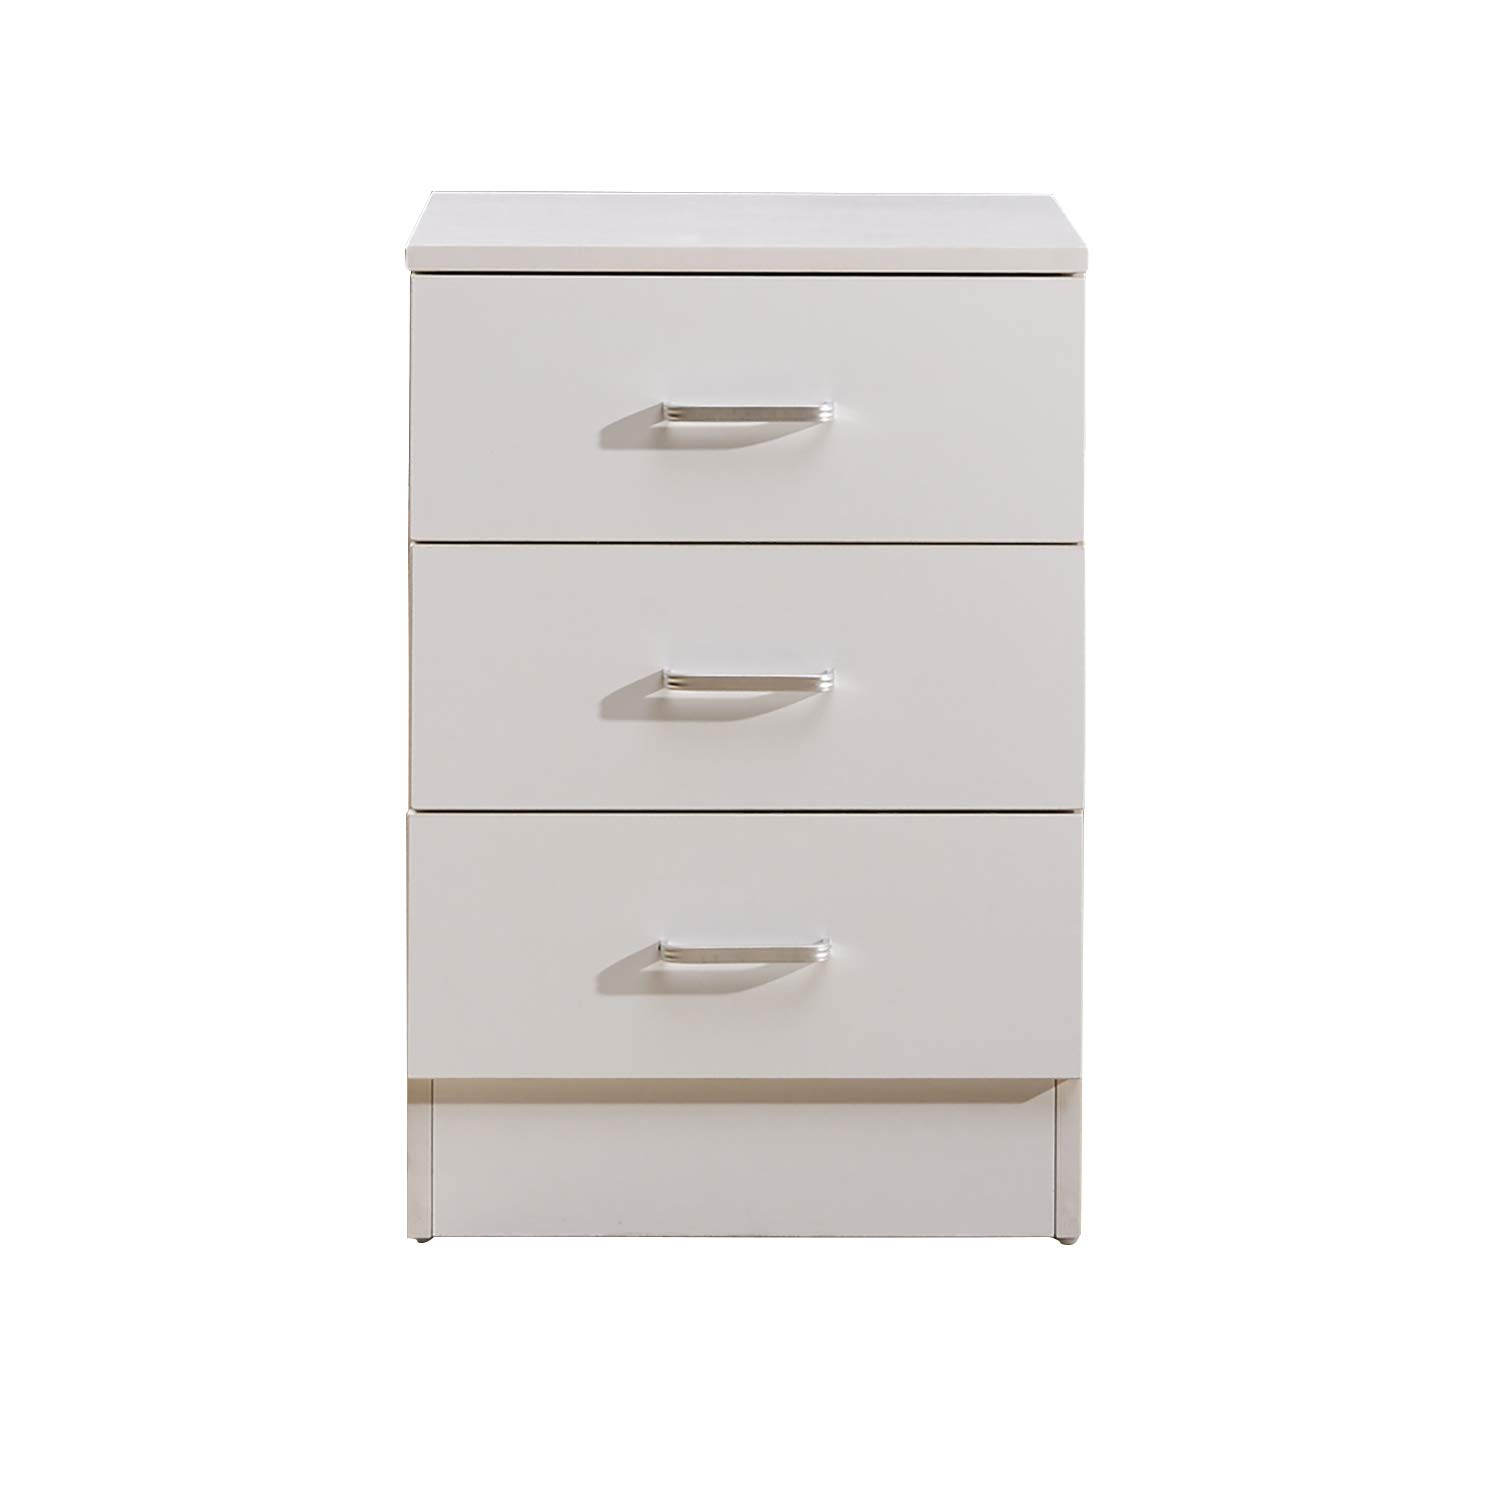 Amazon com greenforest vertical file cabinet 3 drawers wood for home office file storage under desk letter size a4 white office products